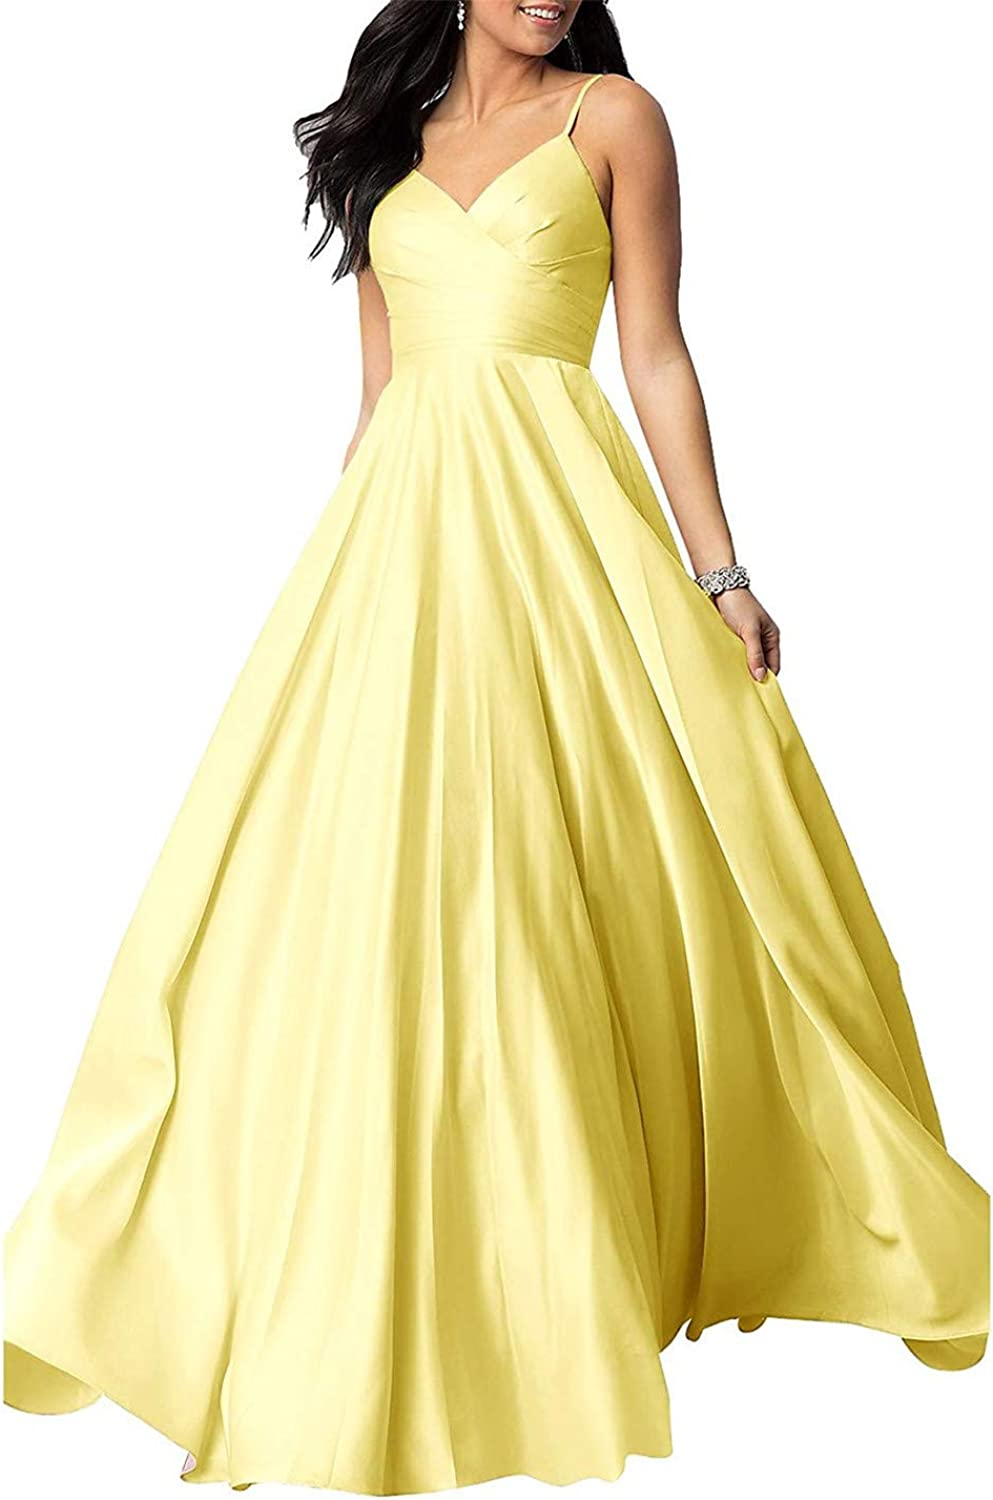 TTdamai Satin Prom Dresses Long Straps V Neck Formal Evening Ball Gowns Pockets